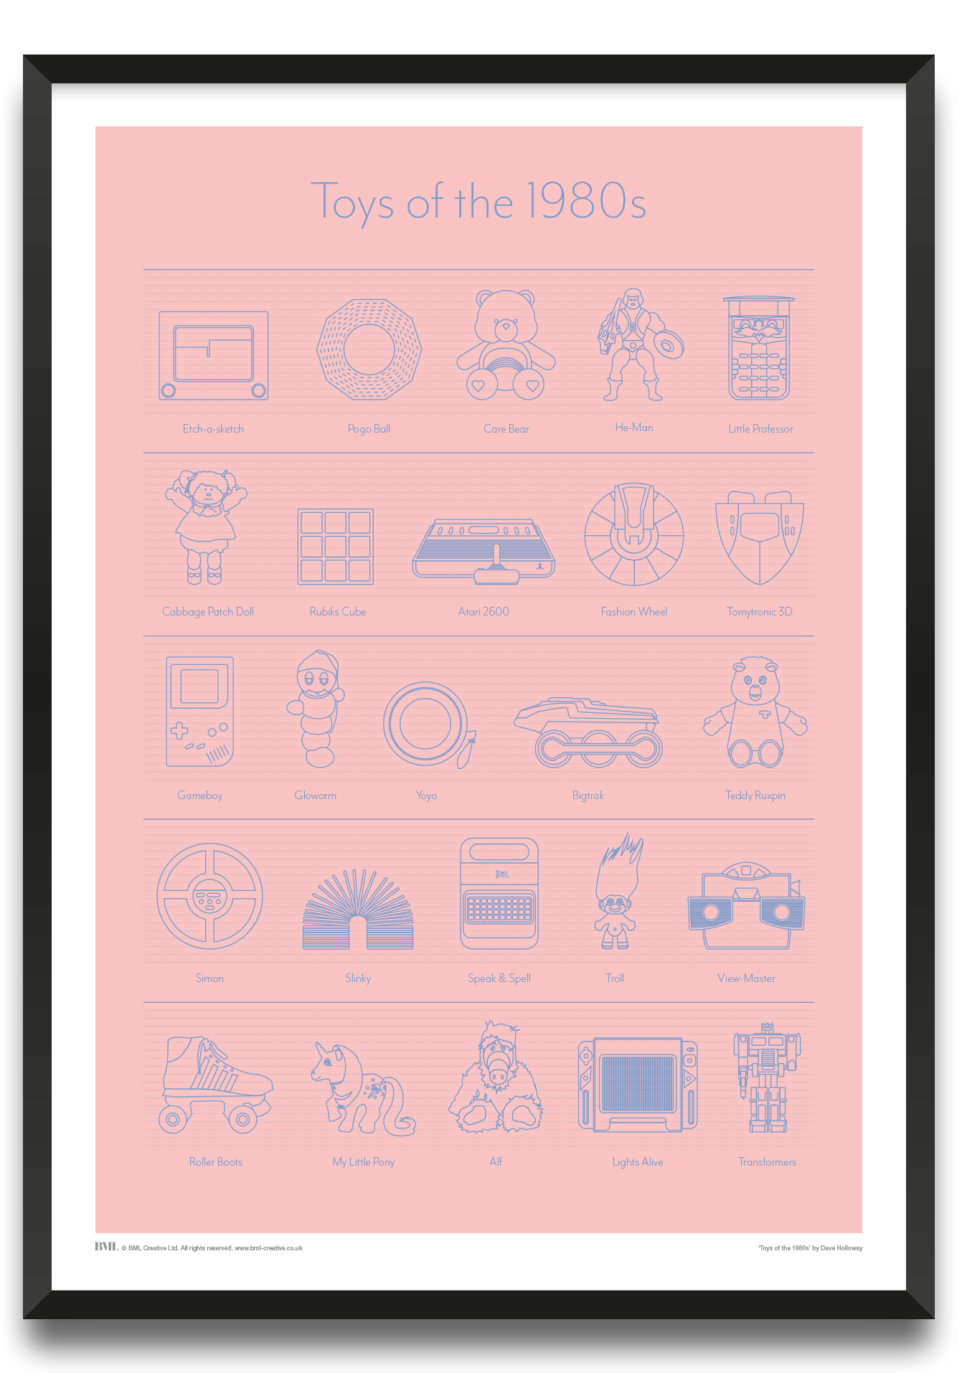 Toys of the 1908s, icon screenprint by Dave Holloway, Prints for Charity